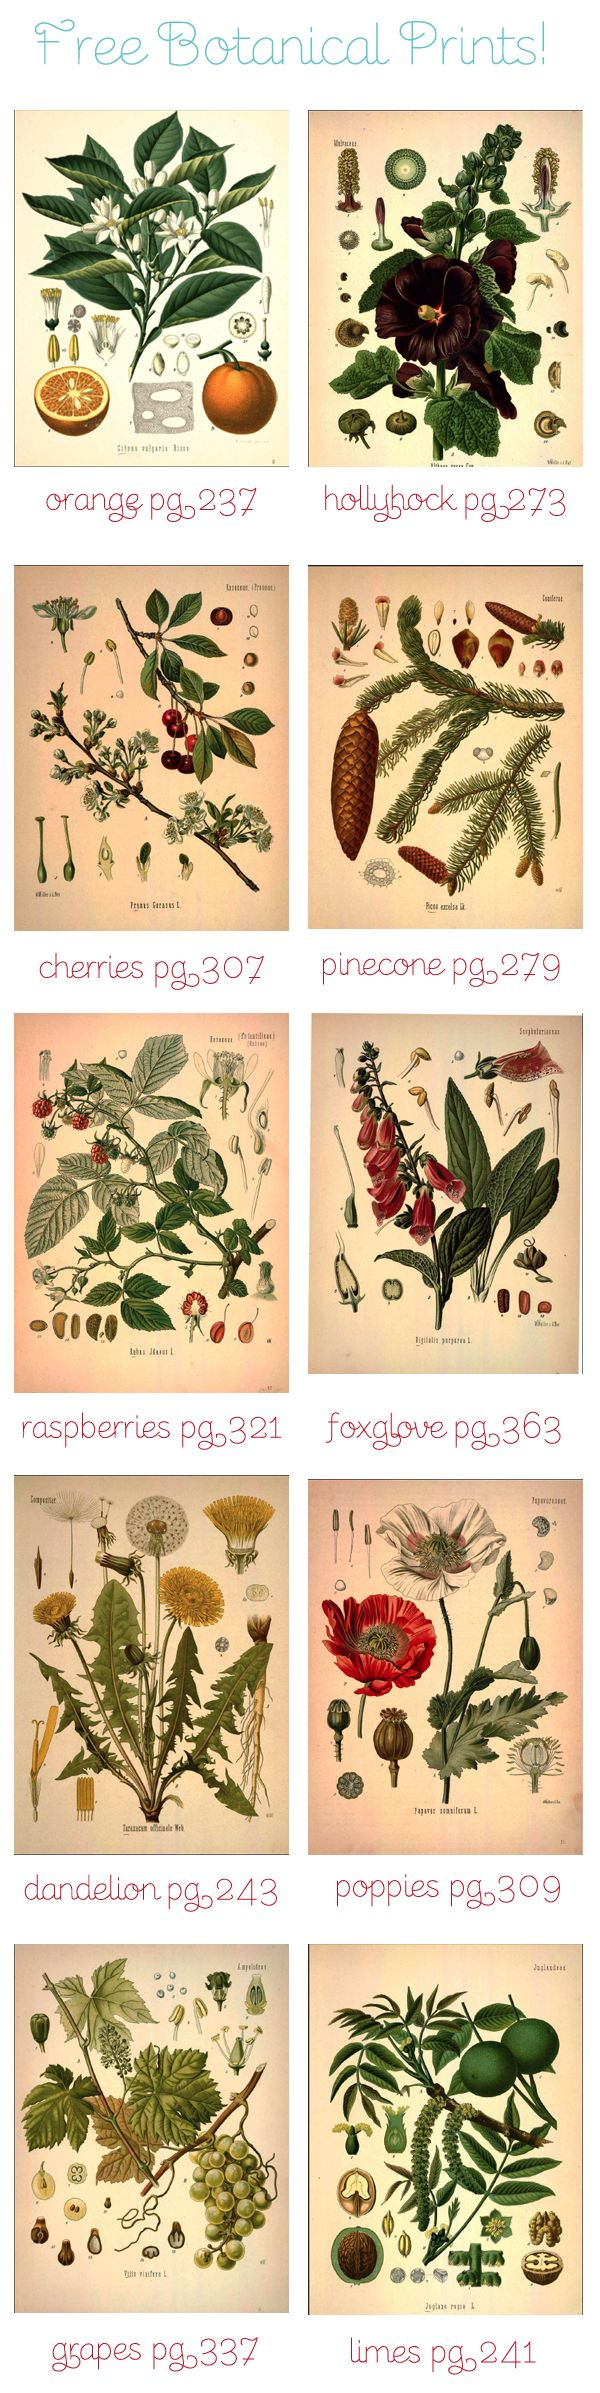 free botanical art prints (more designs than shown)